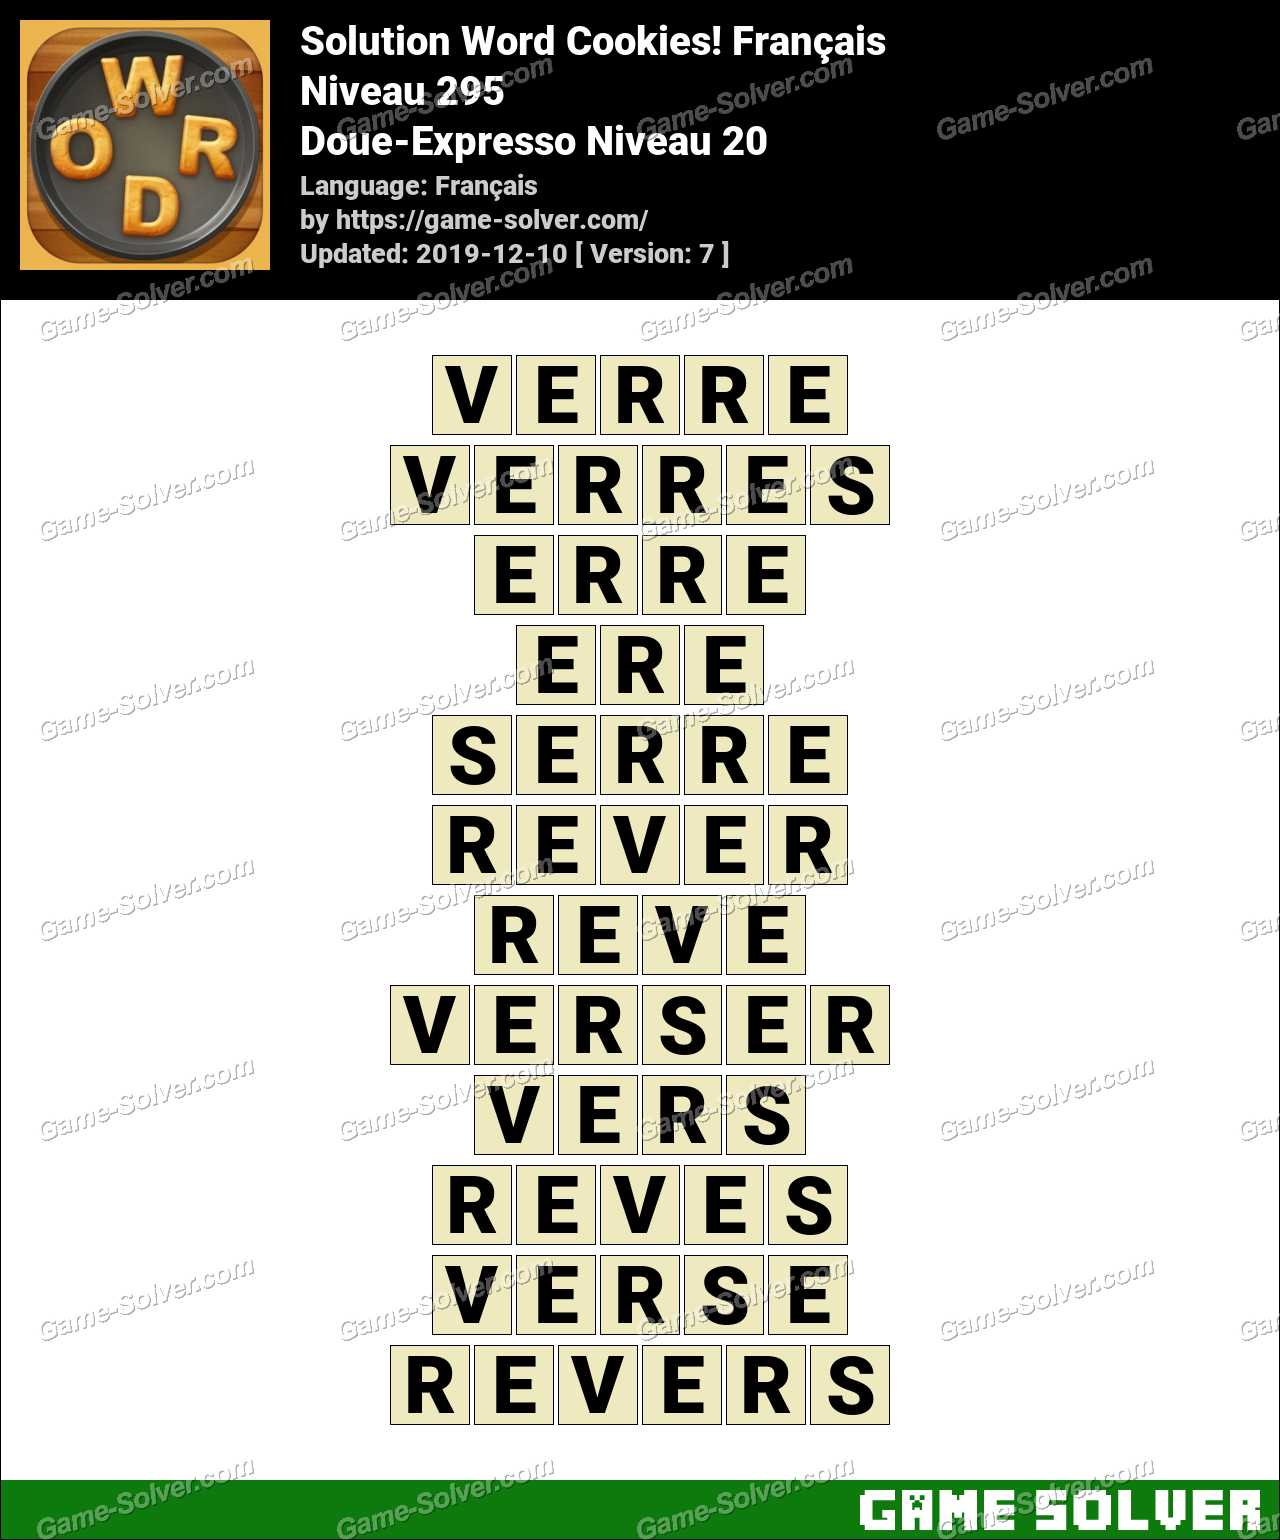 Solution Word Cookies Doue-Expresso Niveau 20